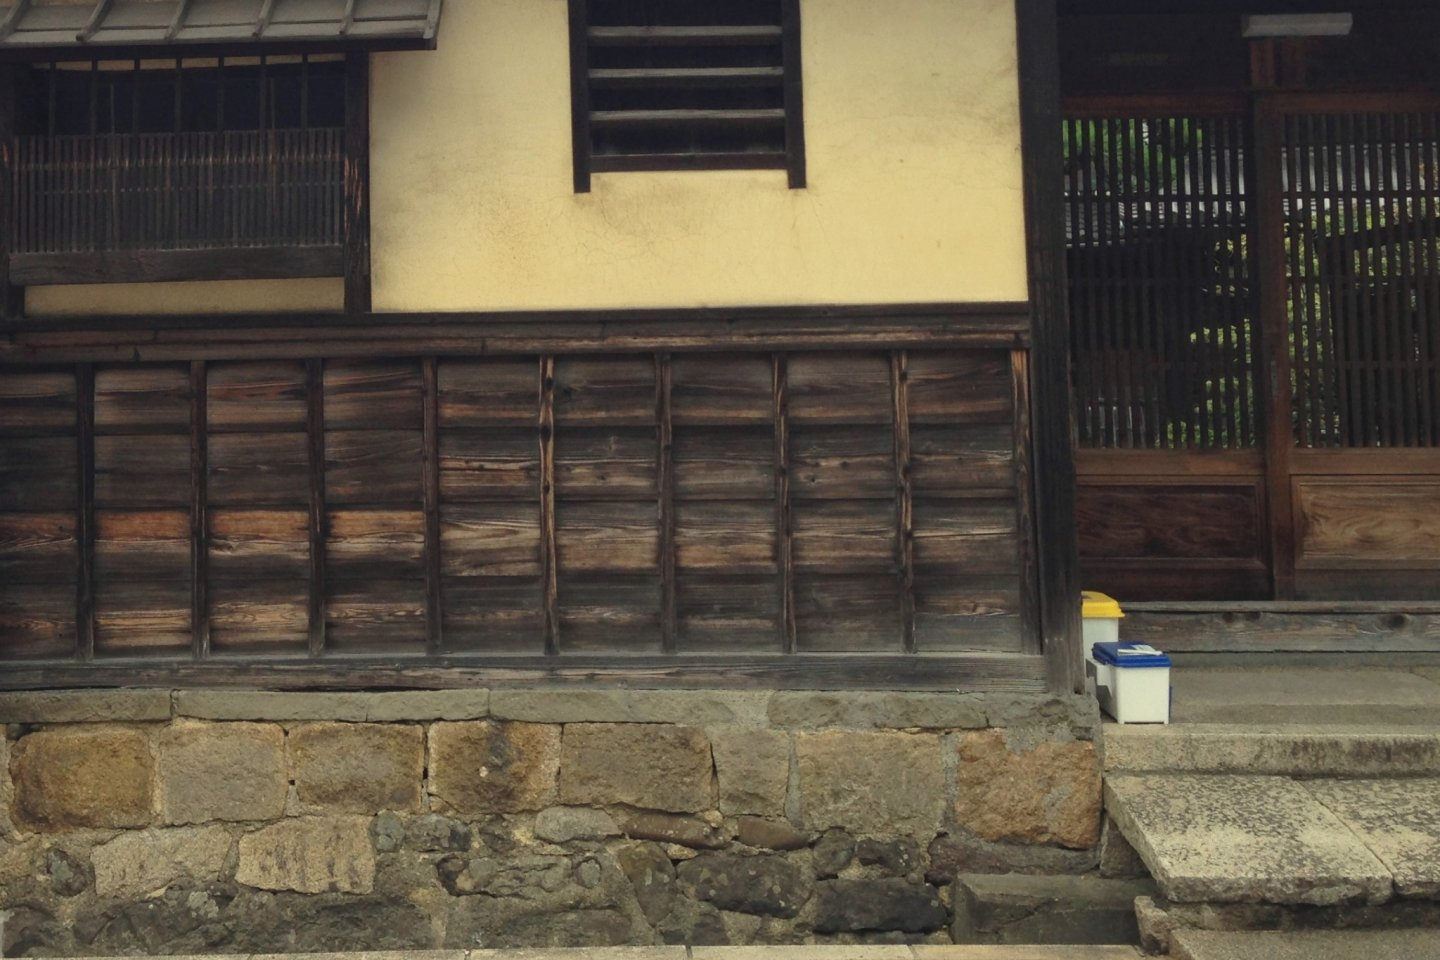 Details from the Sasaki Residence in Kishiwada